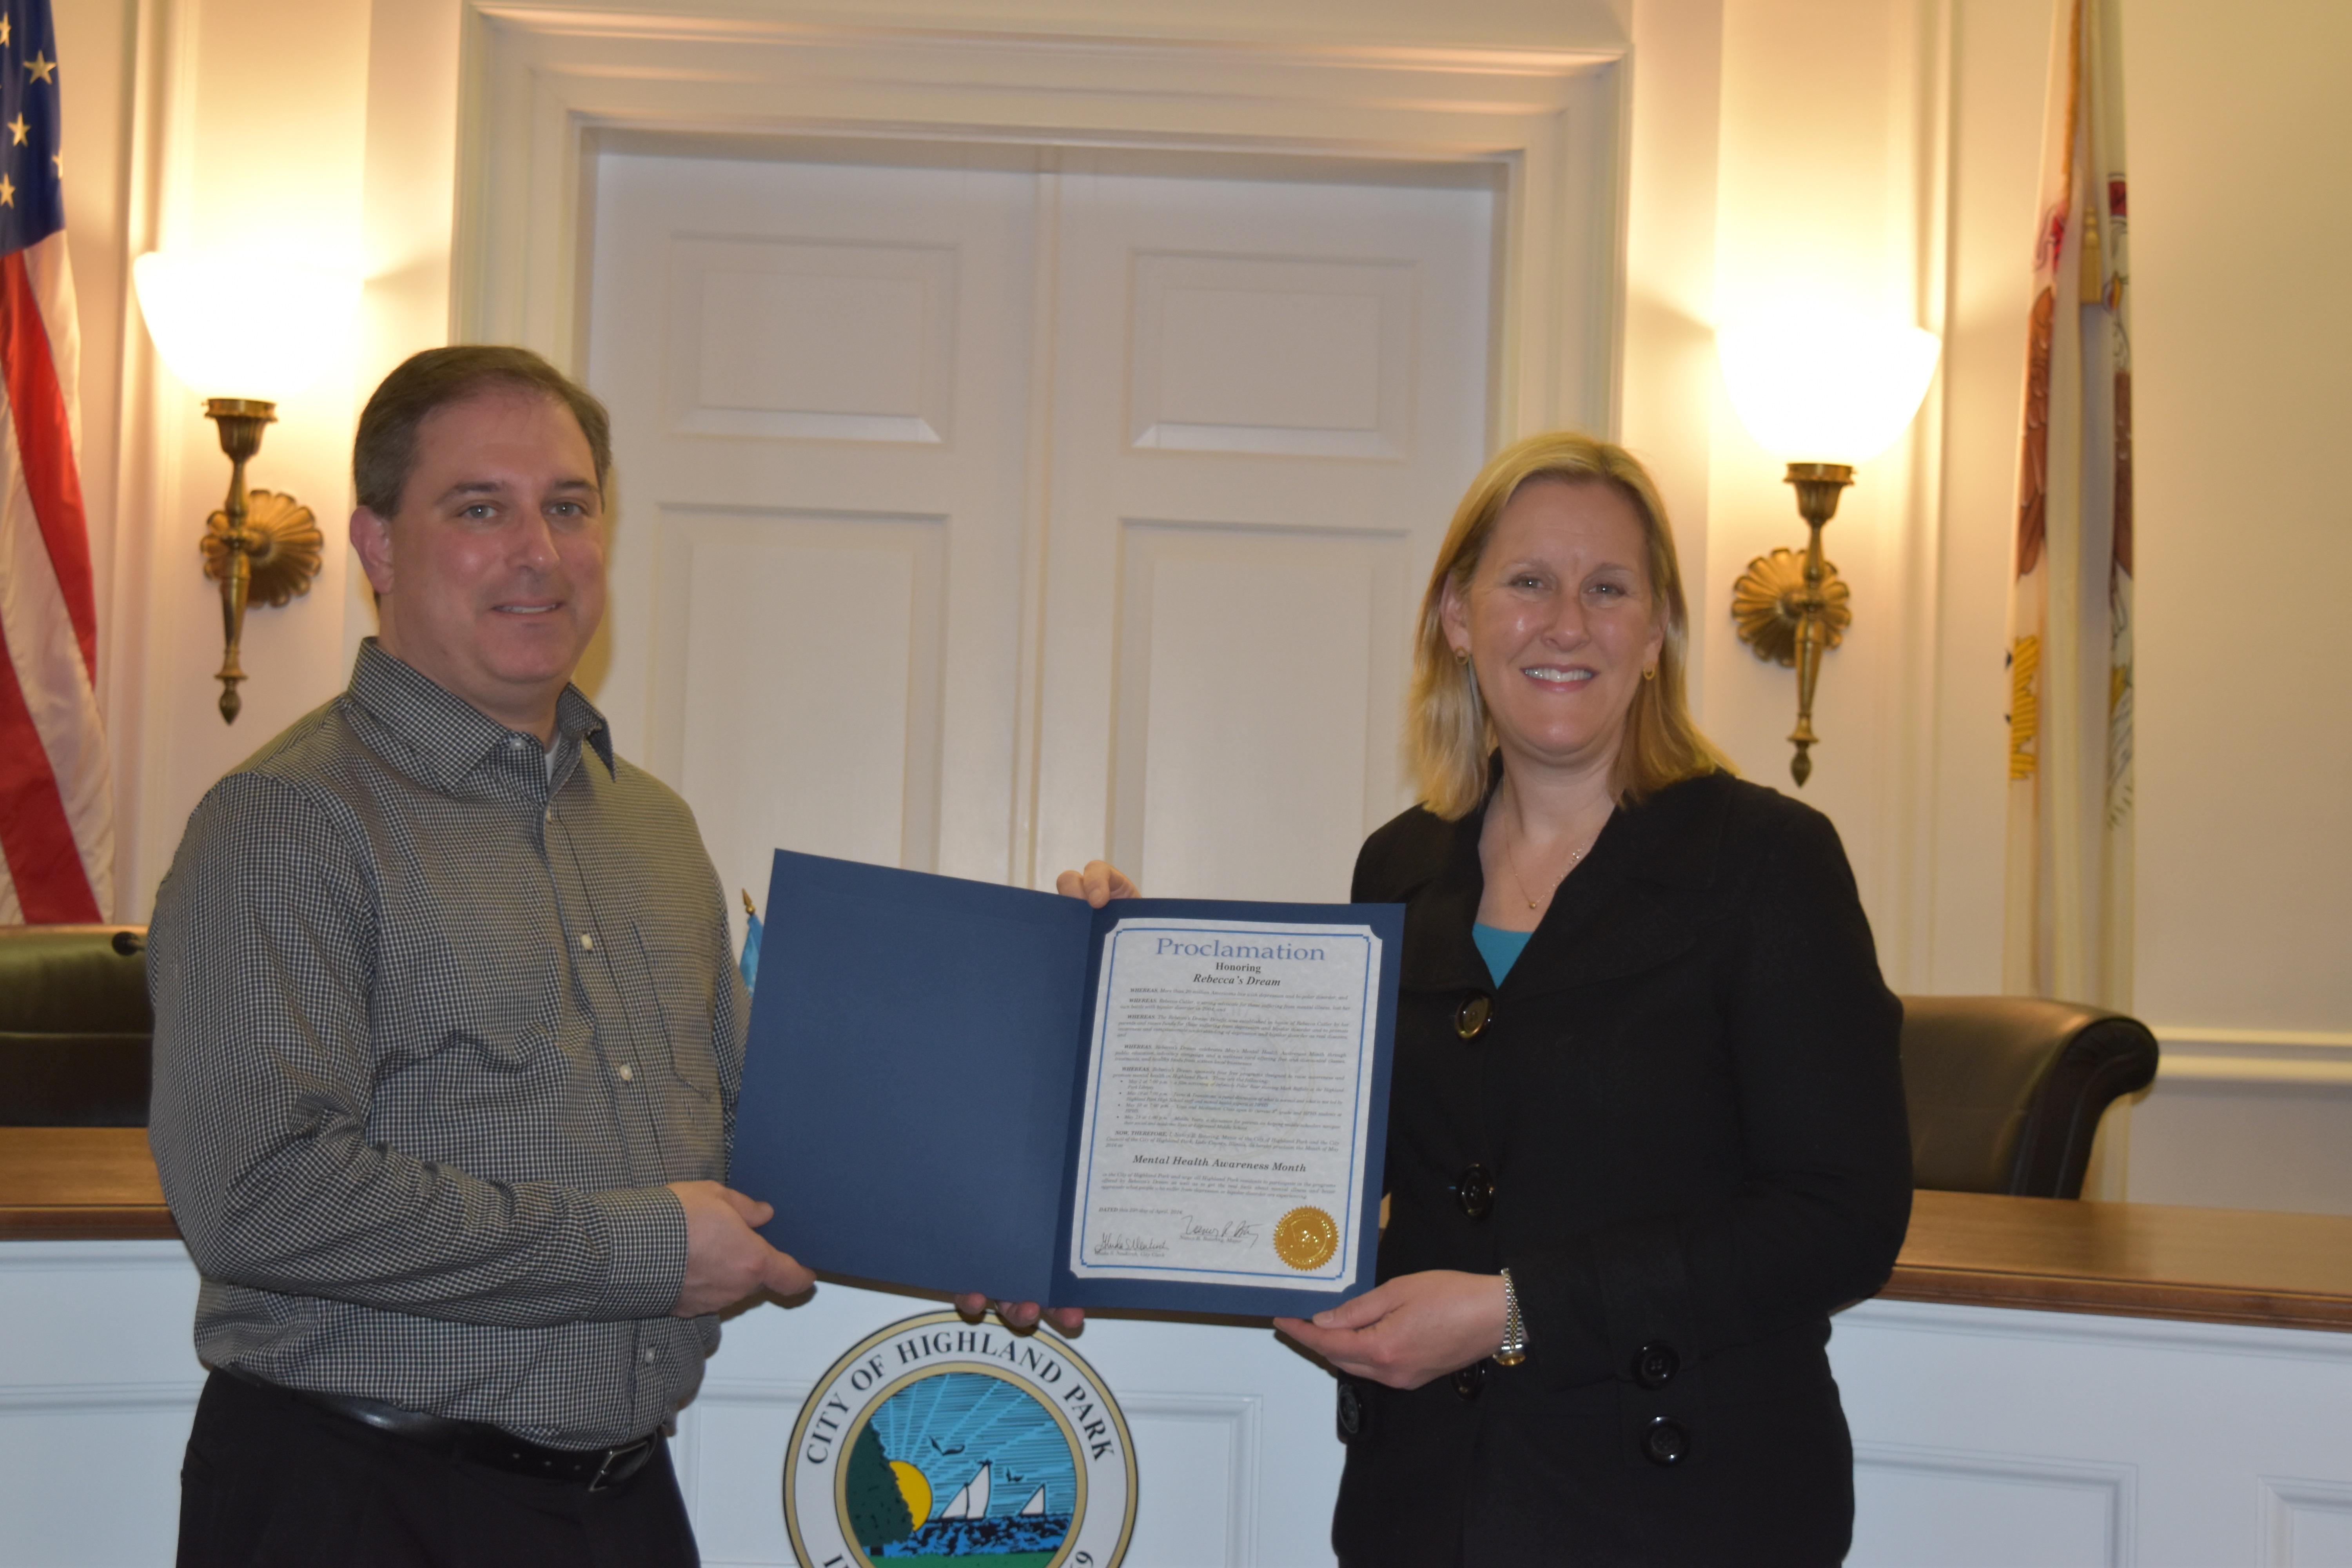 Brett Cutler accepting a Proclamation from Mayor Nancy R. Rotering, Mayor of Highland Park